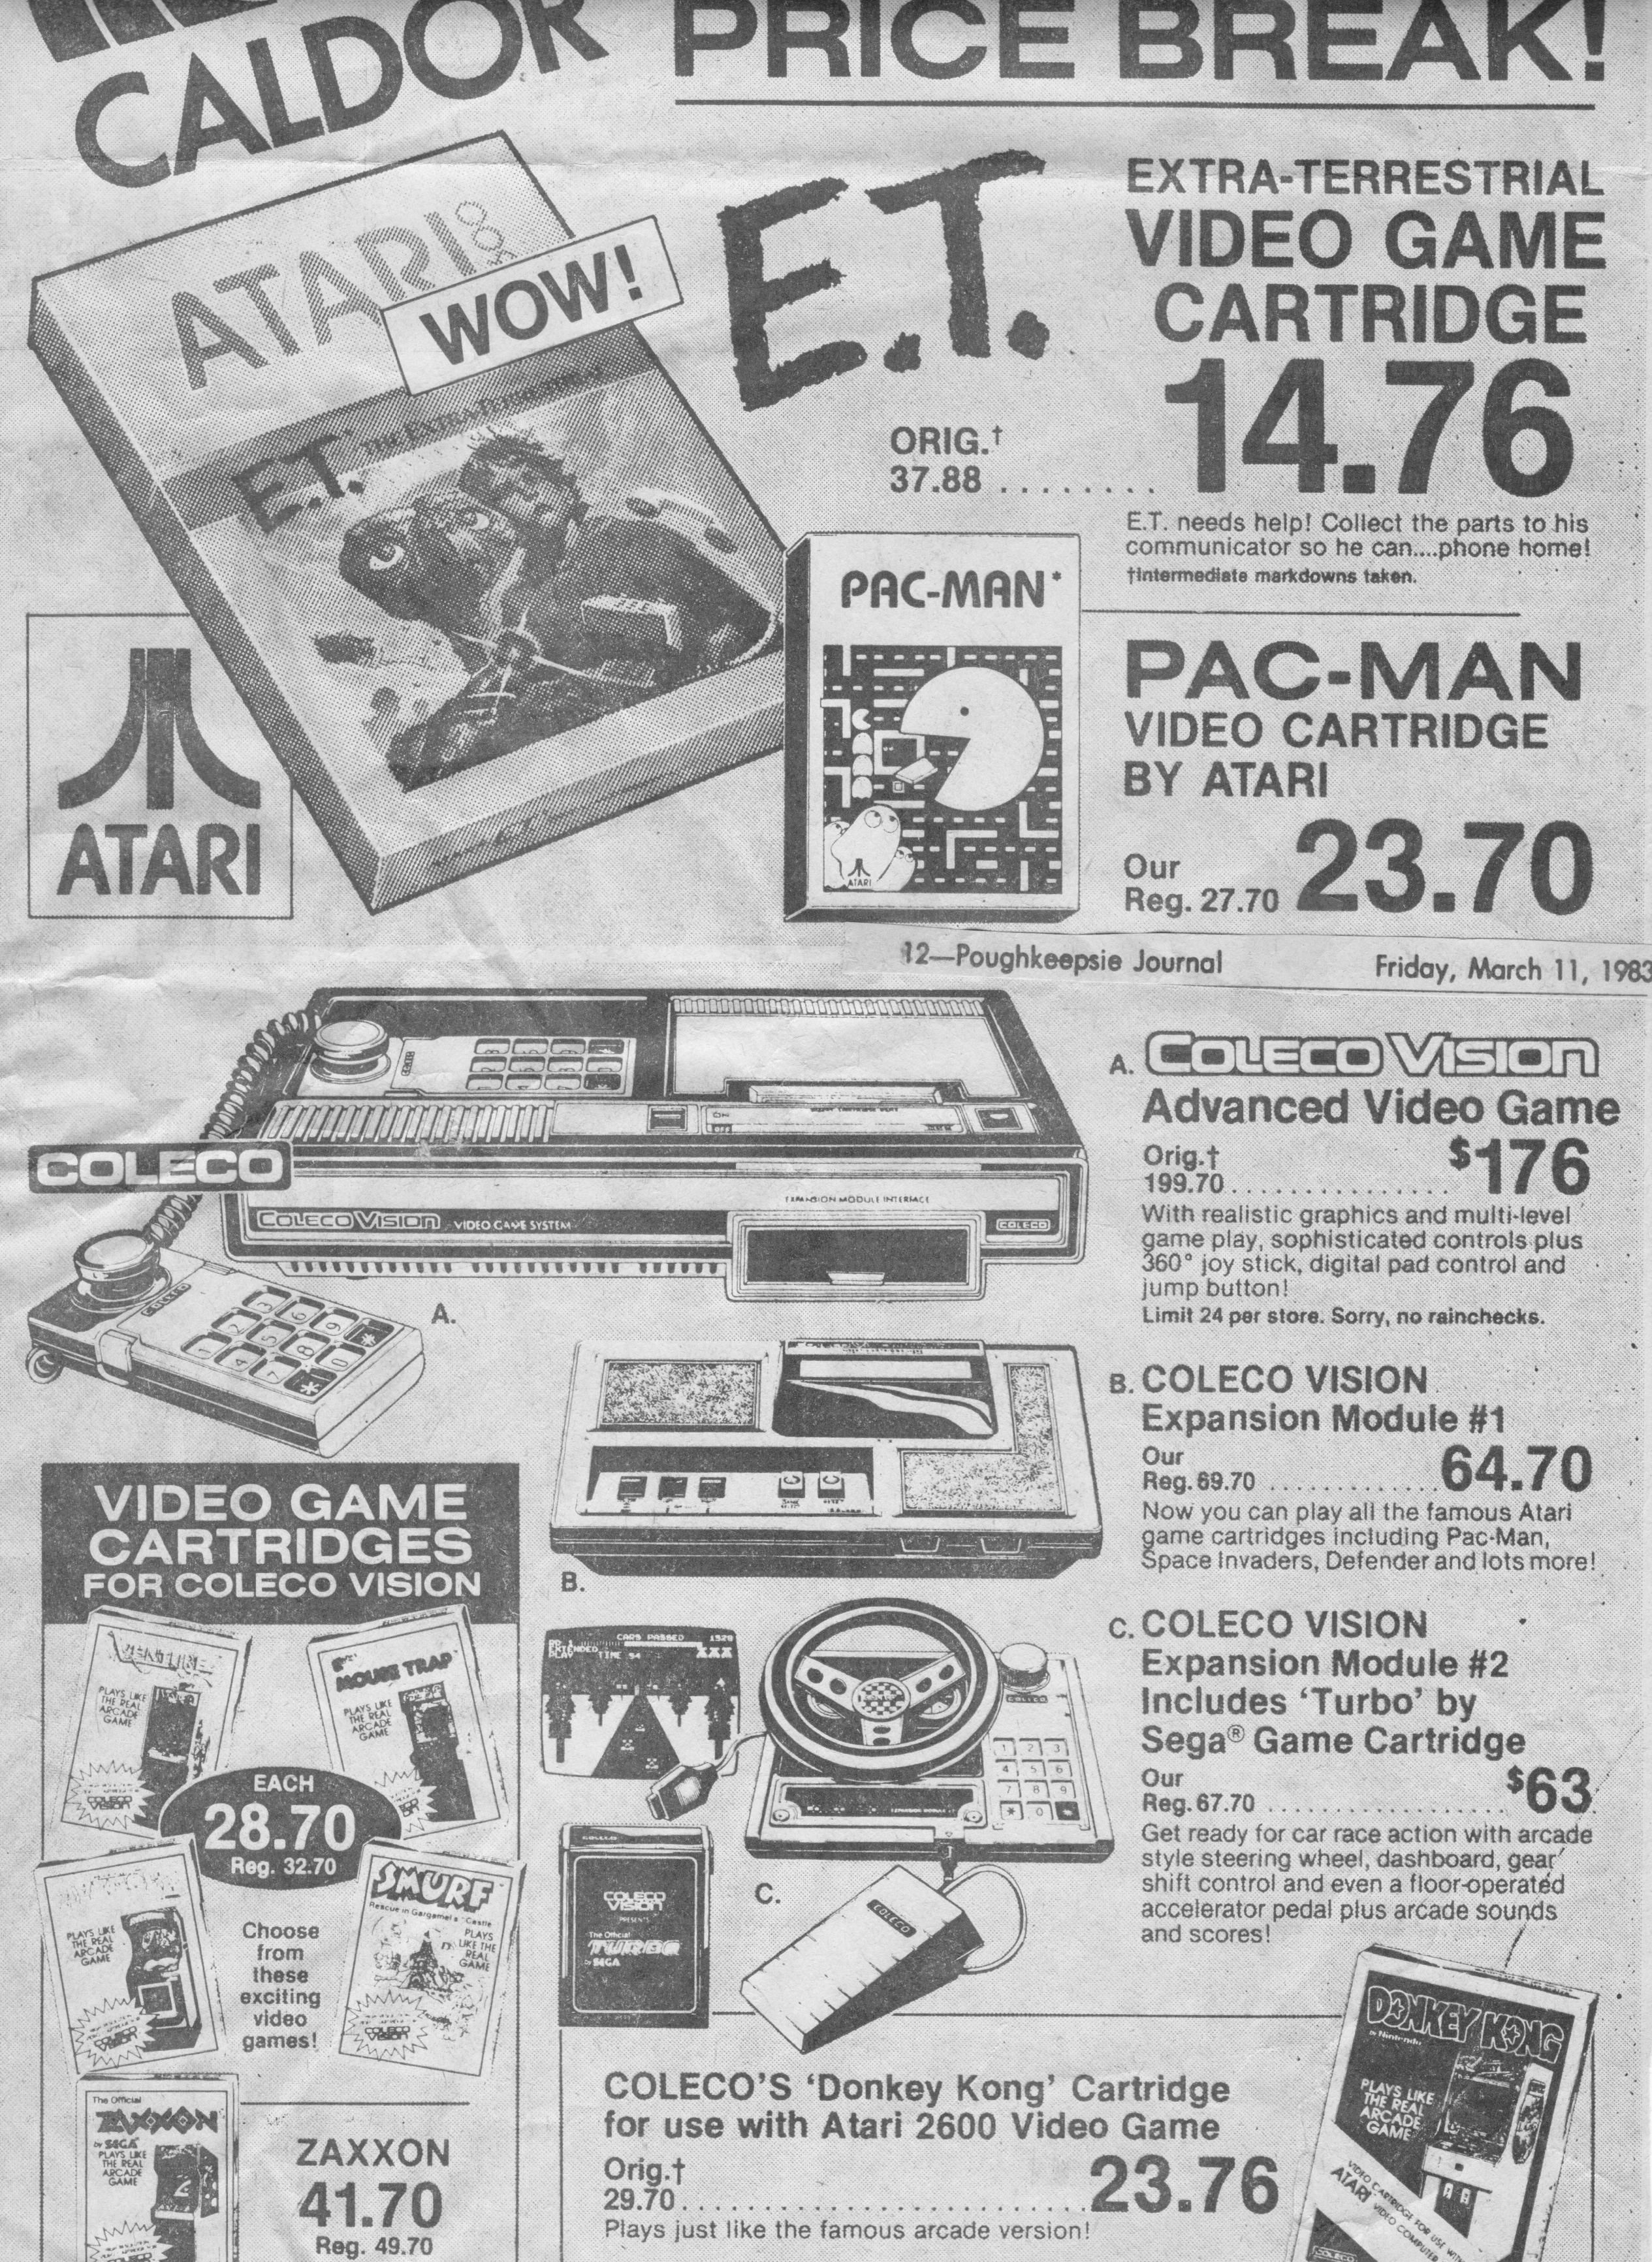 Dated, March 11, 1983  Huge sale on Atari and Colecovision